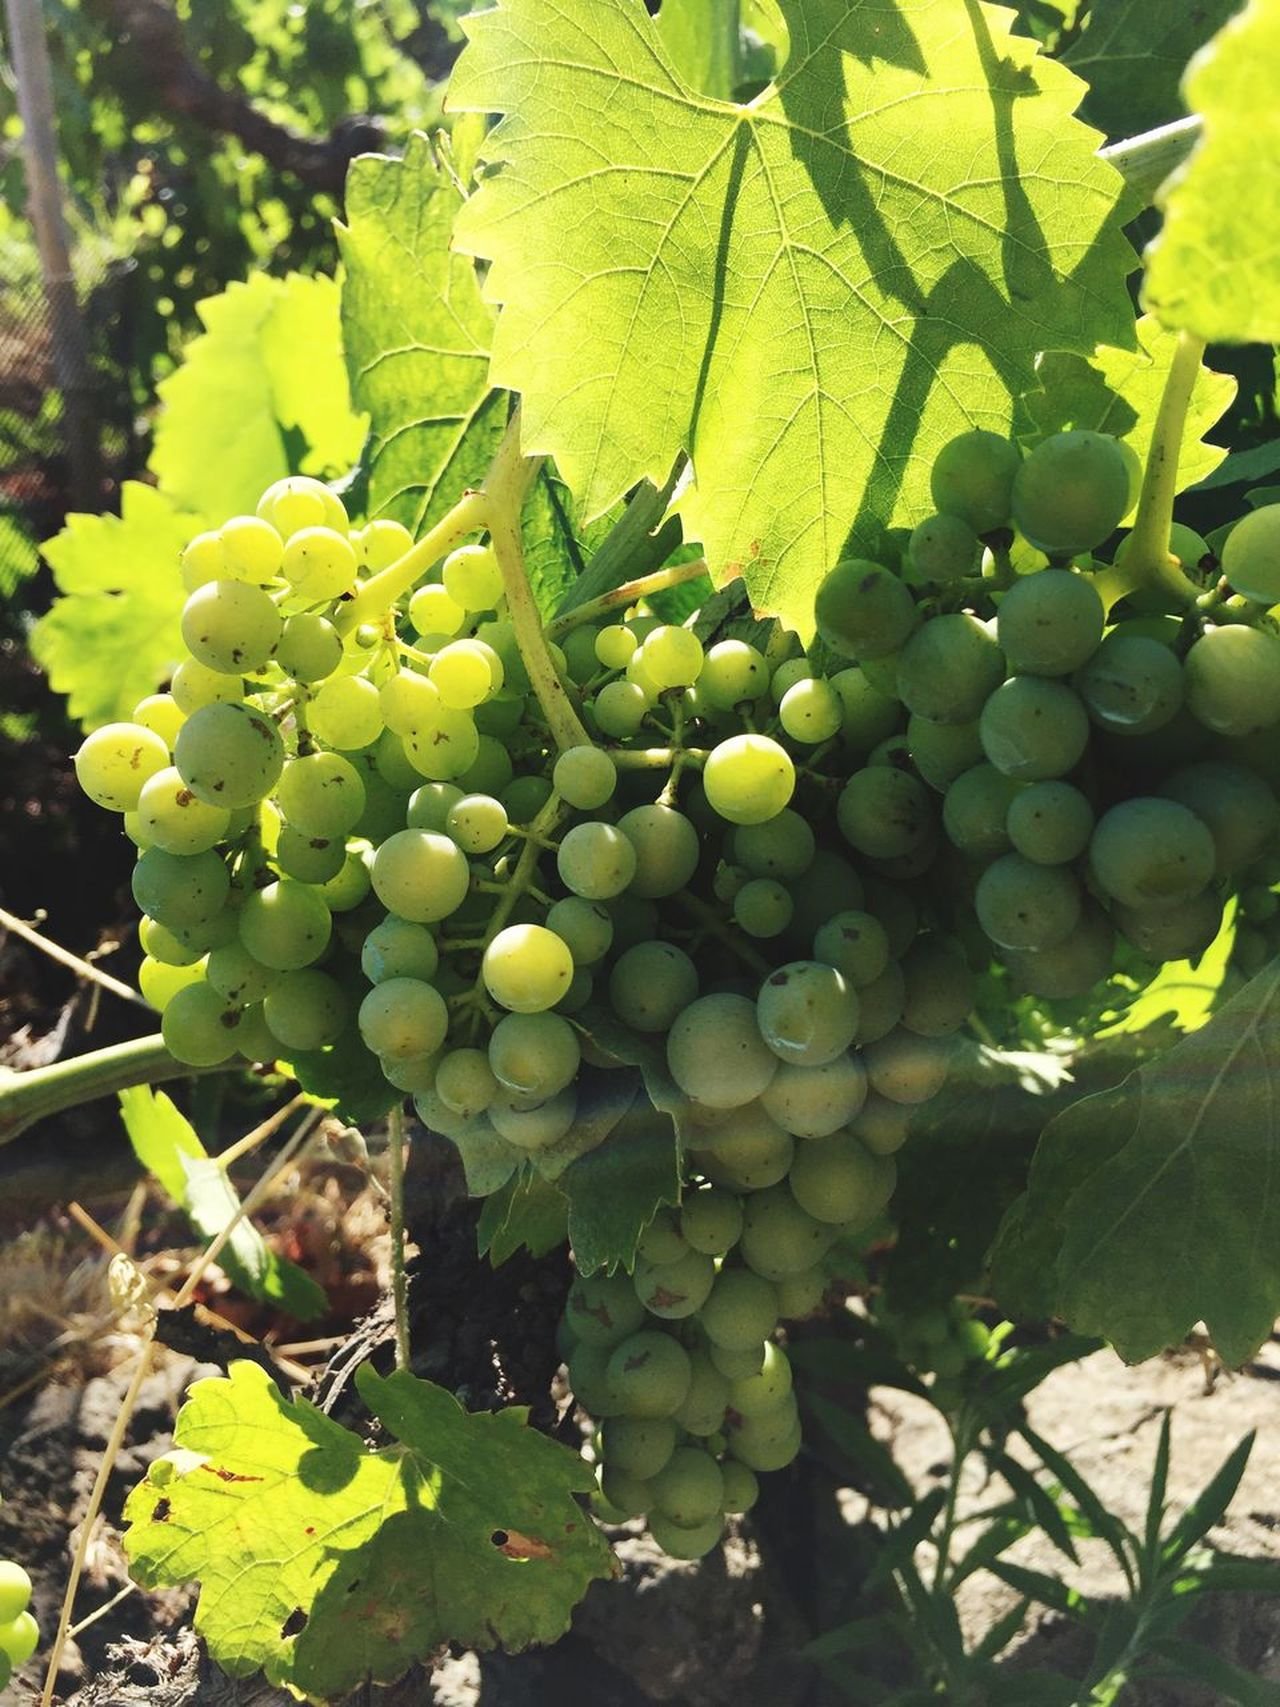 Sommergefühle vineyard Growth Fruit Green Color Leaf Grape Food And Drink Vineyard Agriculture Day Nature Freshness Outdoors Plant No People Tree Healthy Eating Food Sunlight Hanging Beauty In Nature Grapes Vineyards